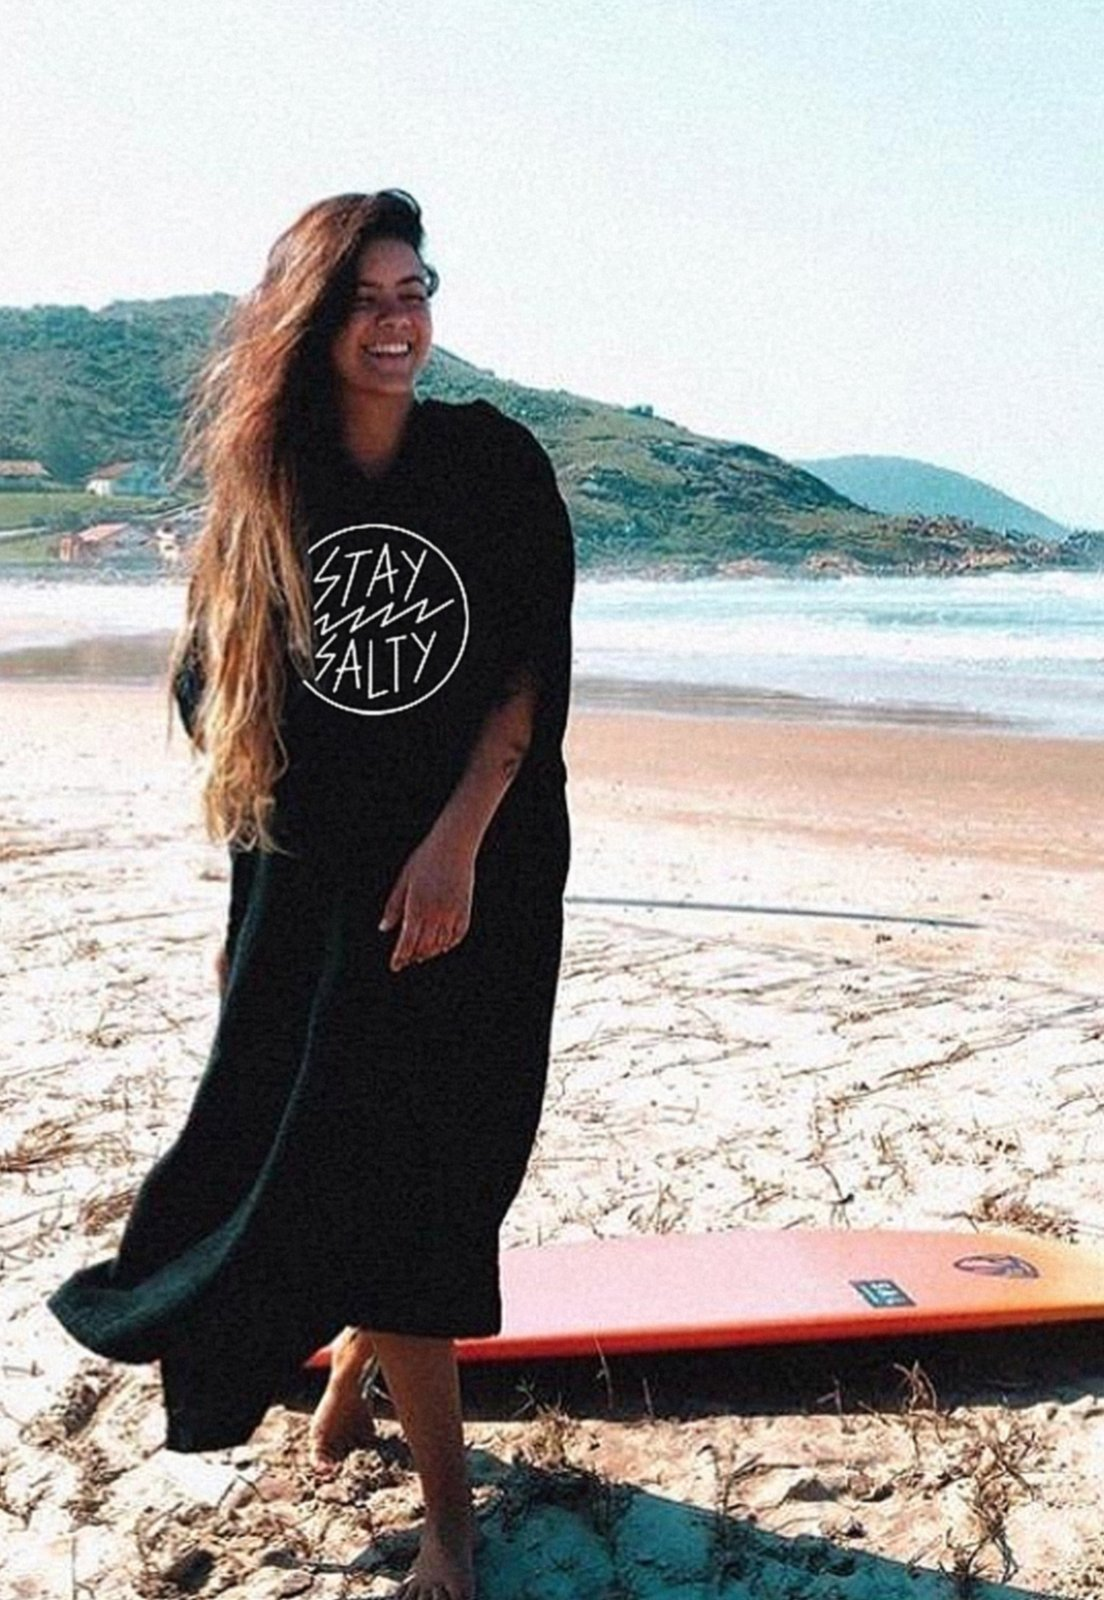 Poncho Stay Salty Adulto - Preto